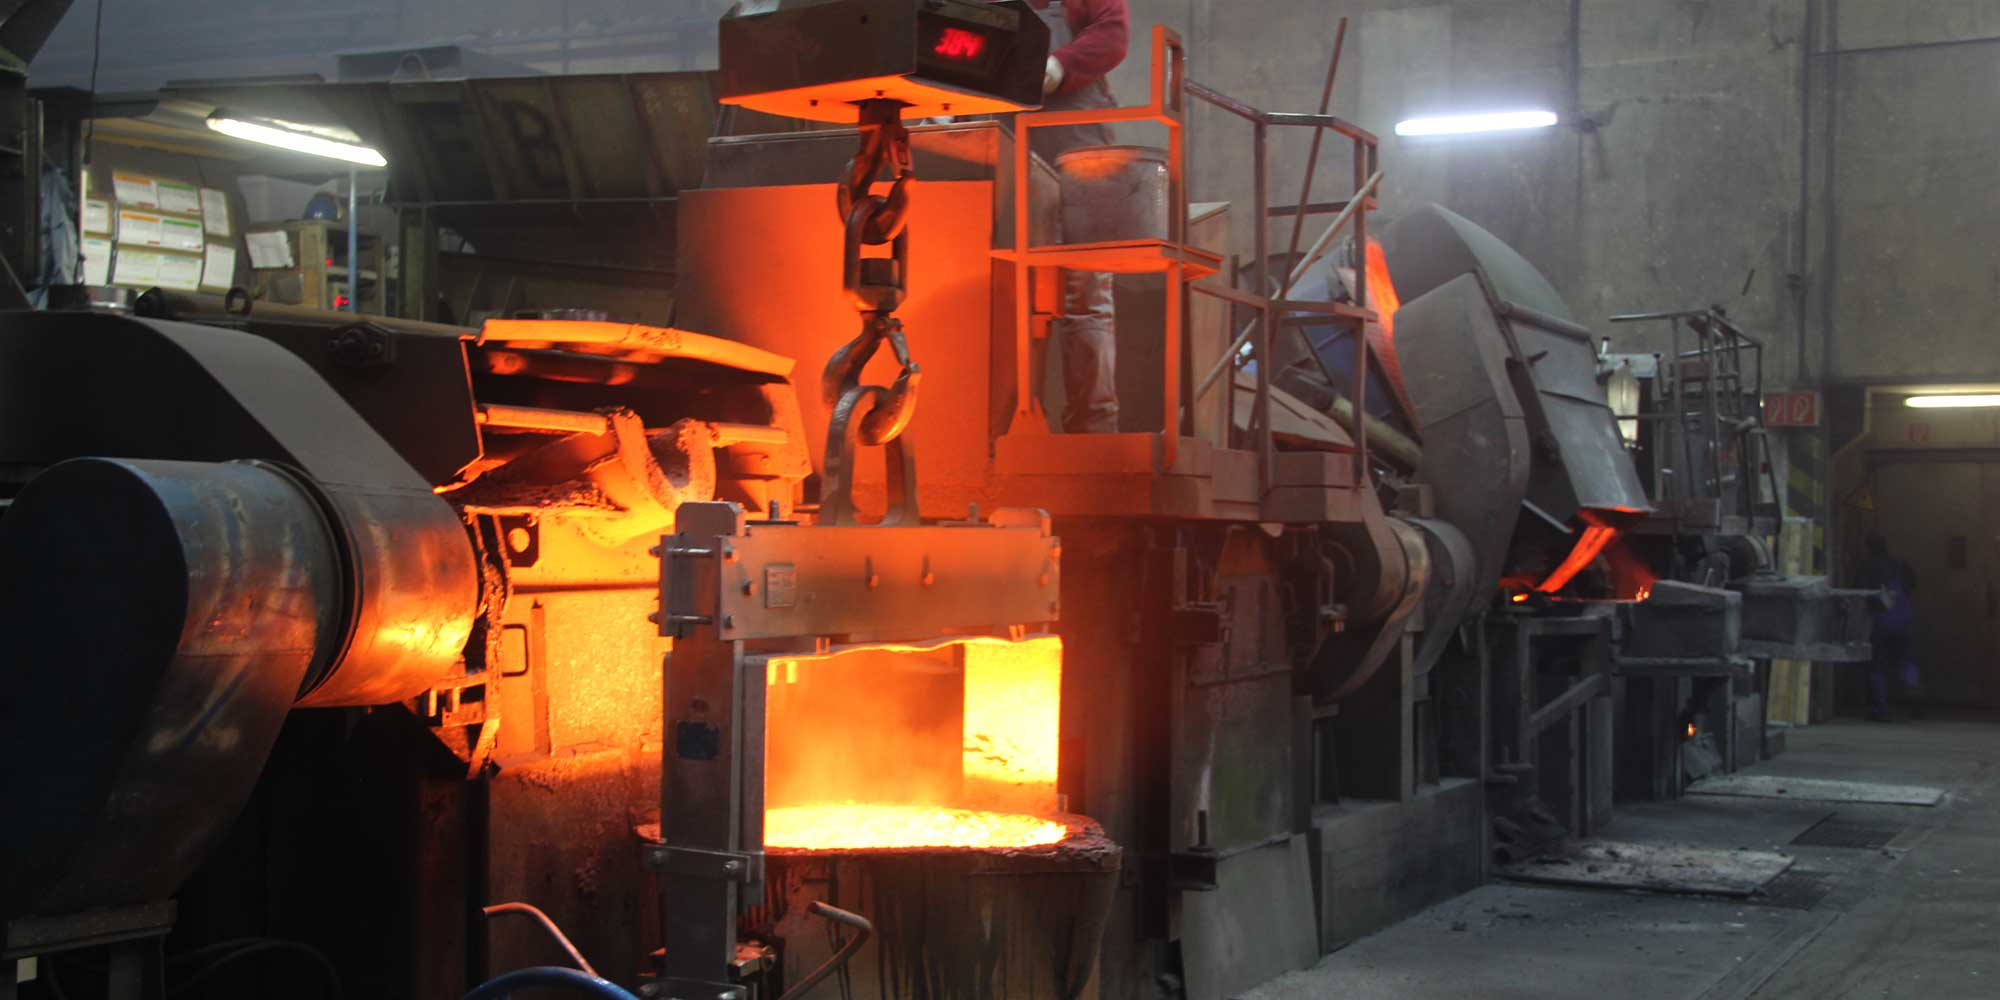 At the casting furnace